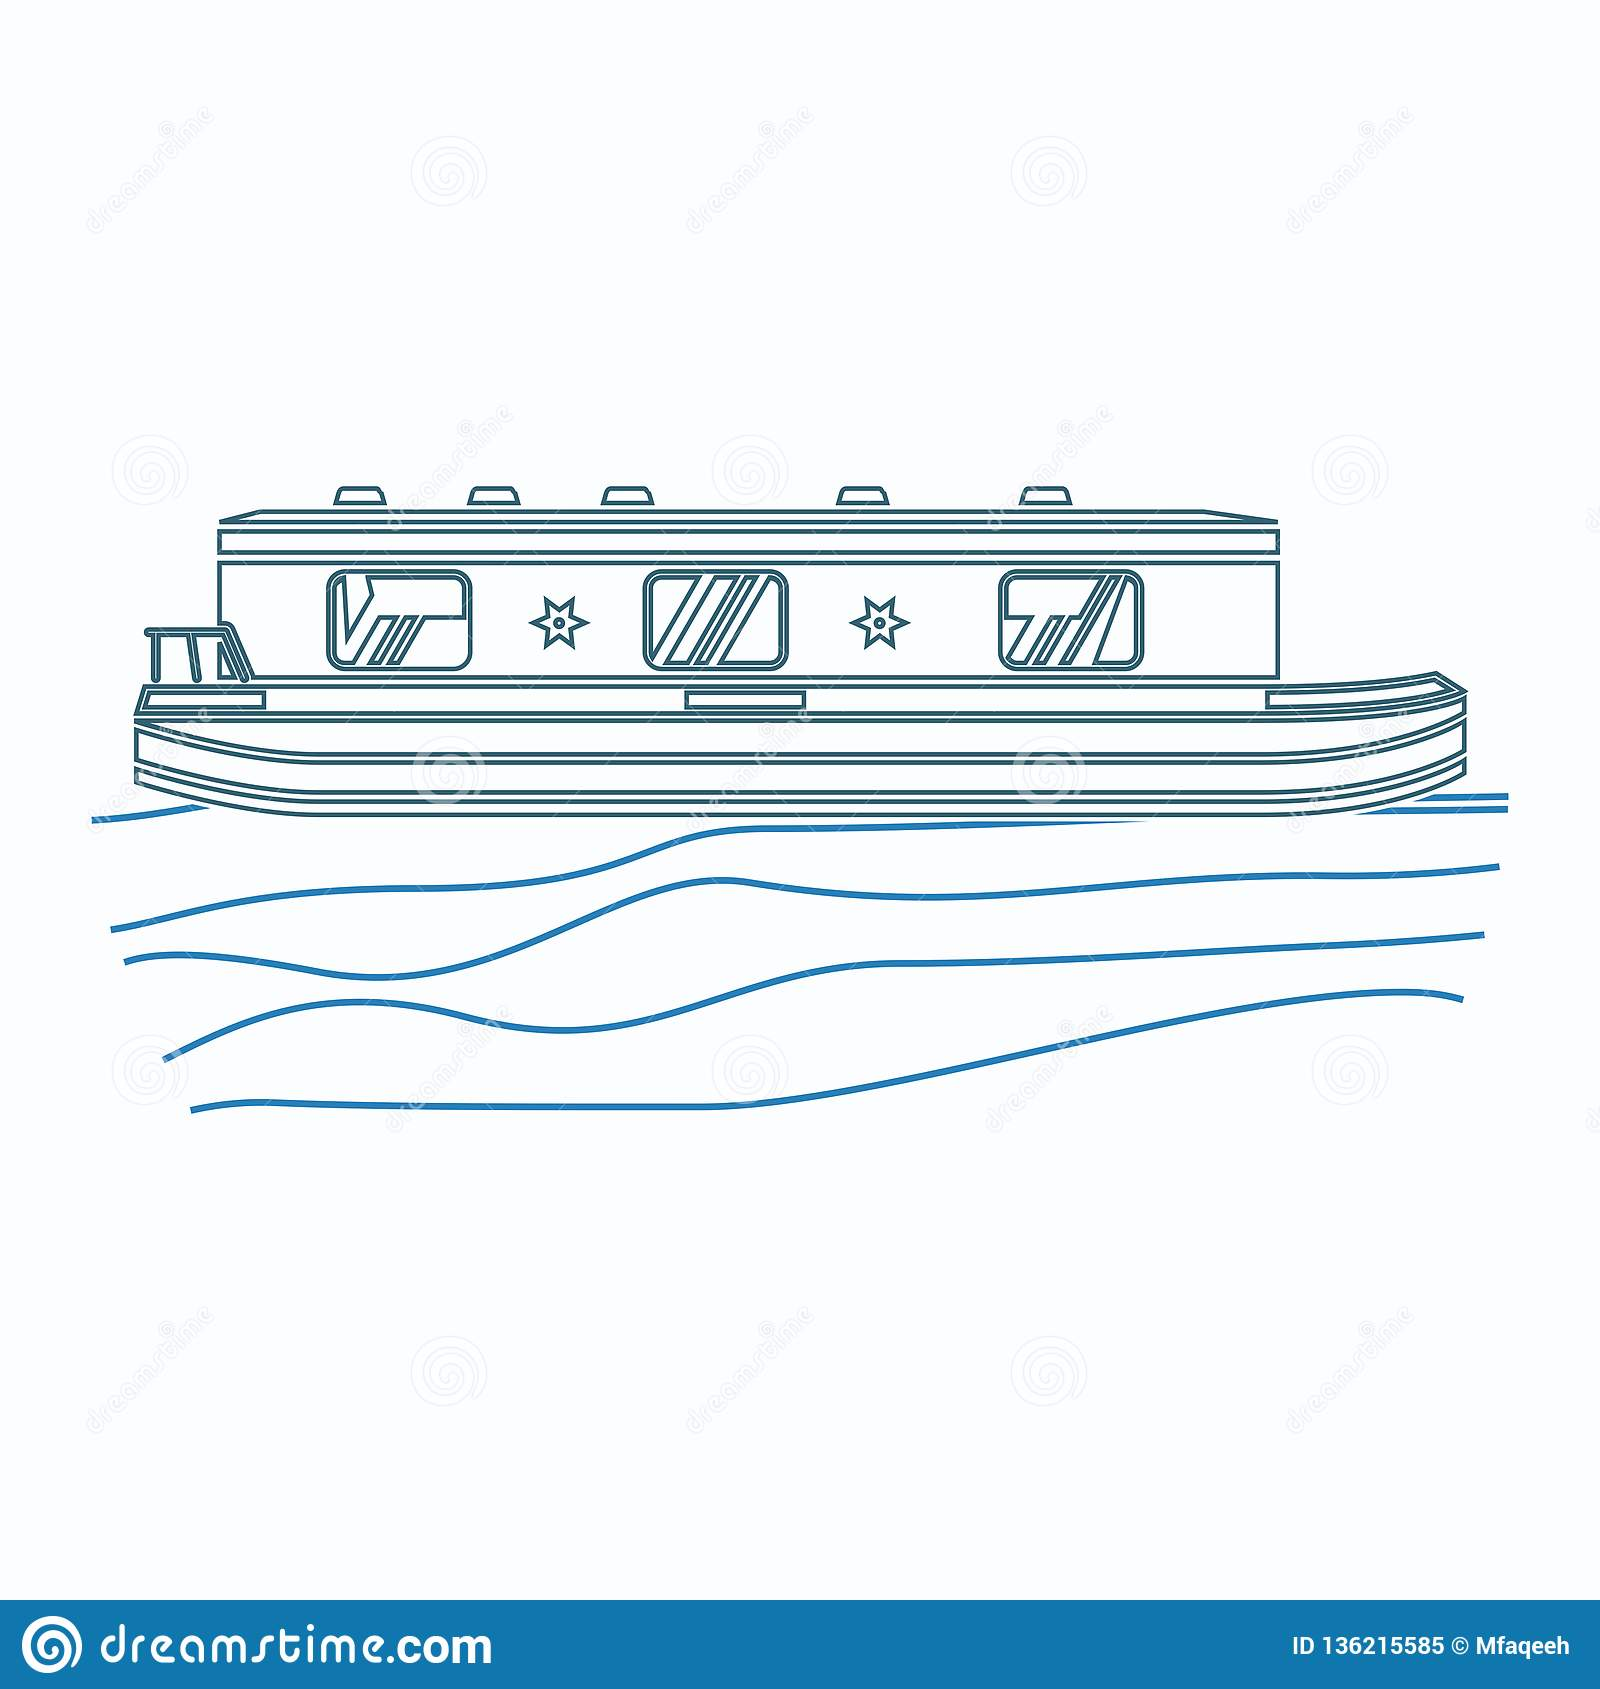 hight resolution of editable side view floating canal boat on wavy water vector illustration in outline style